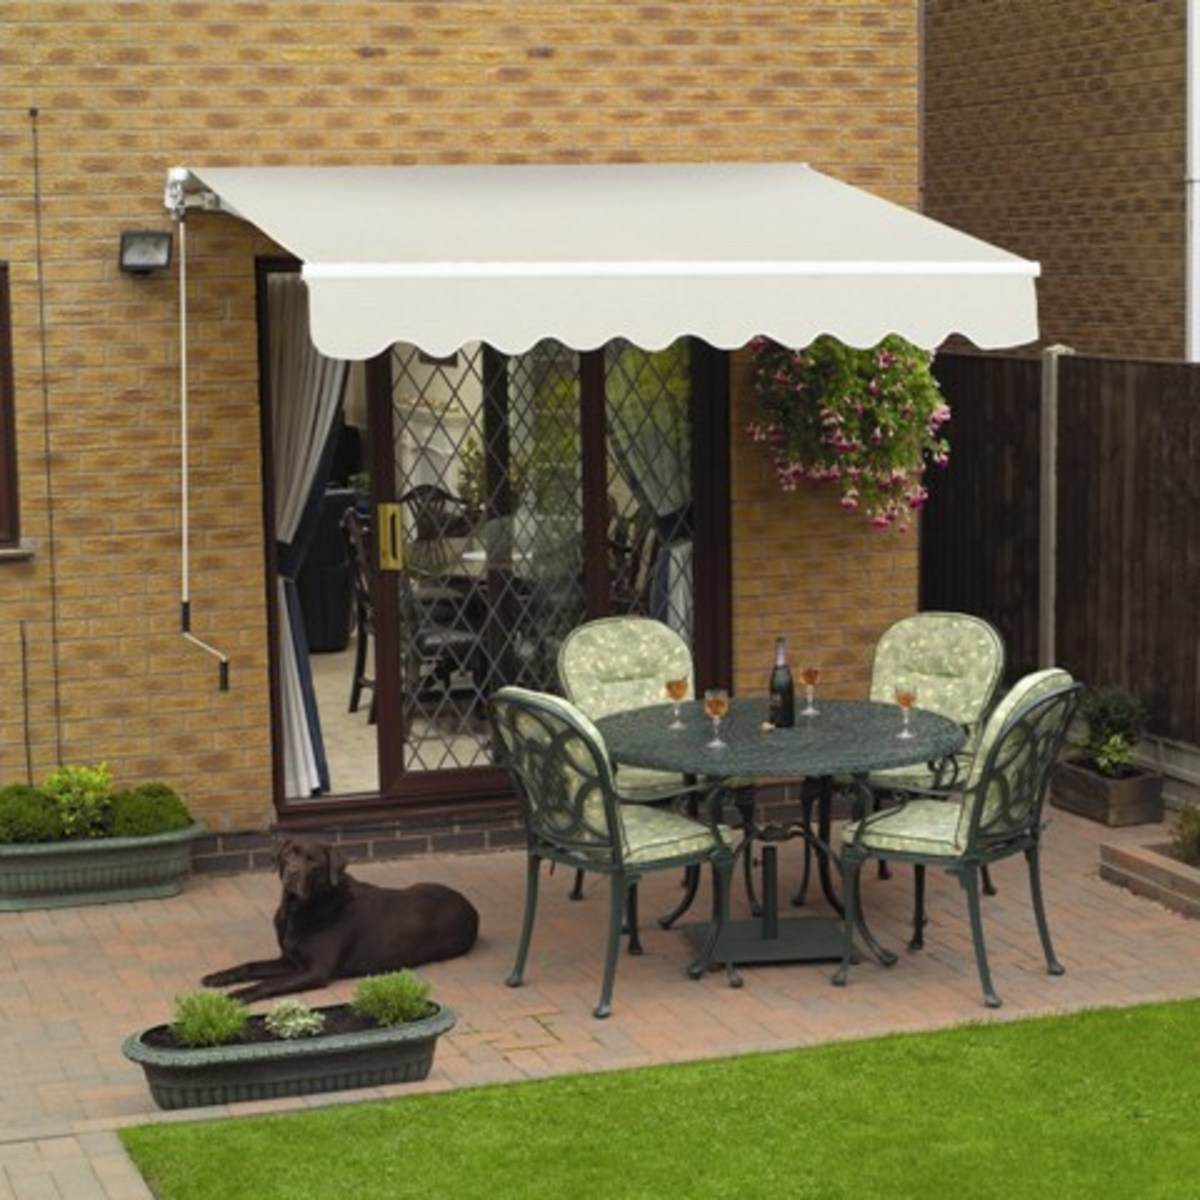 A patio awning, with a polyester cover